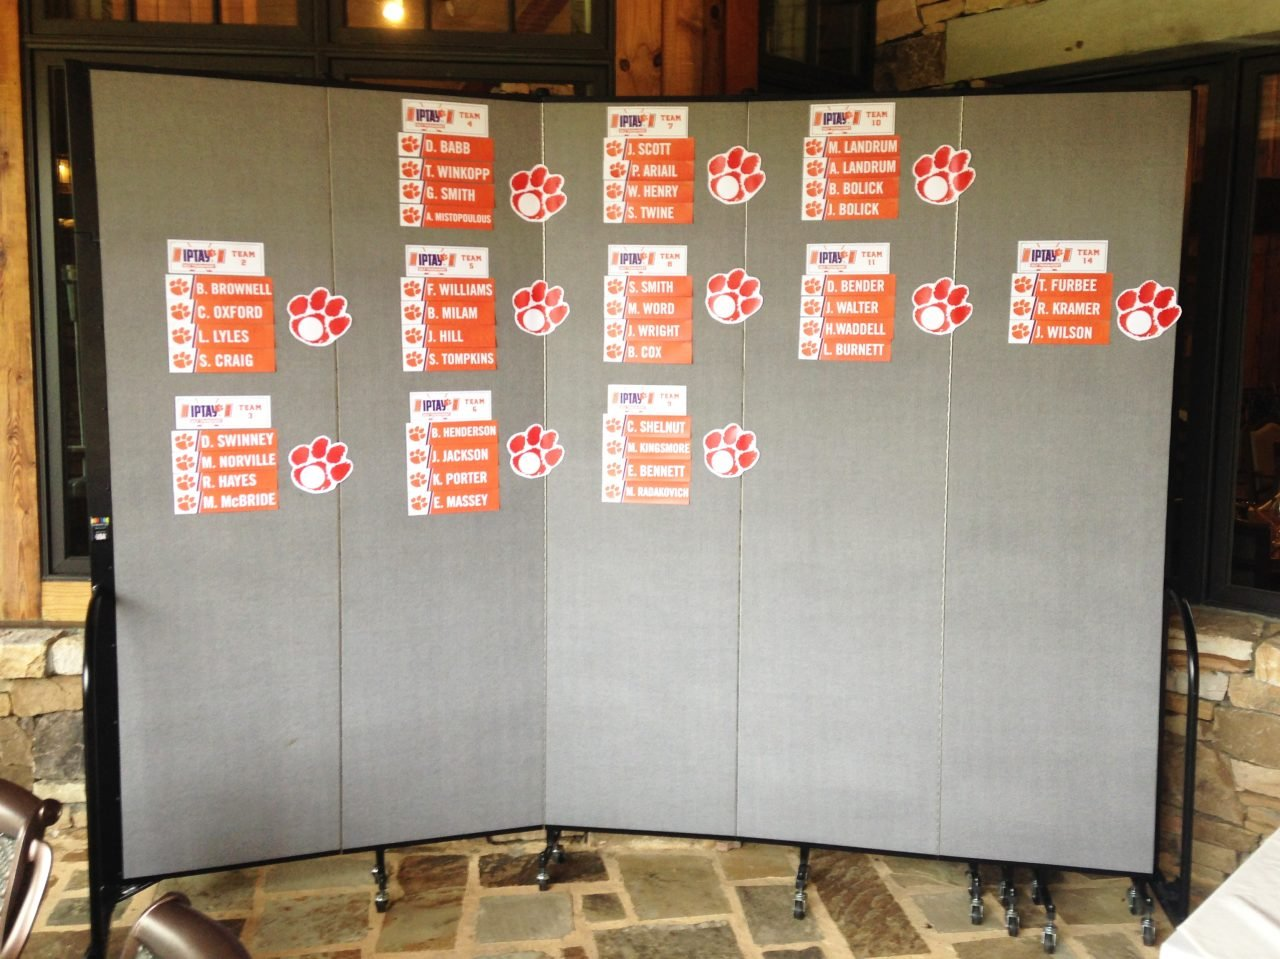 Moveable walls are used to display golf score cards for a tournament